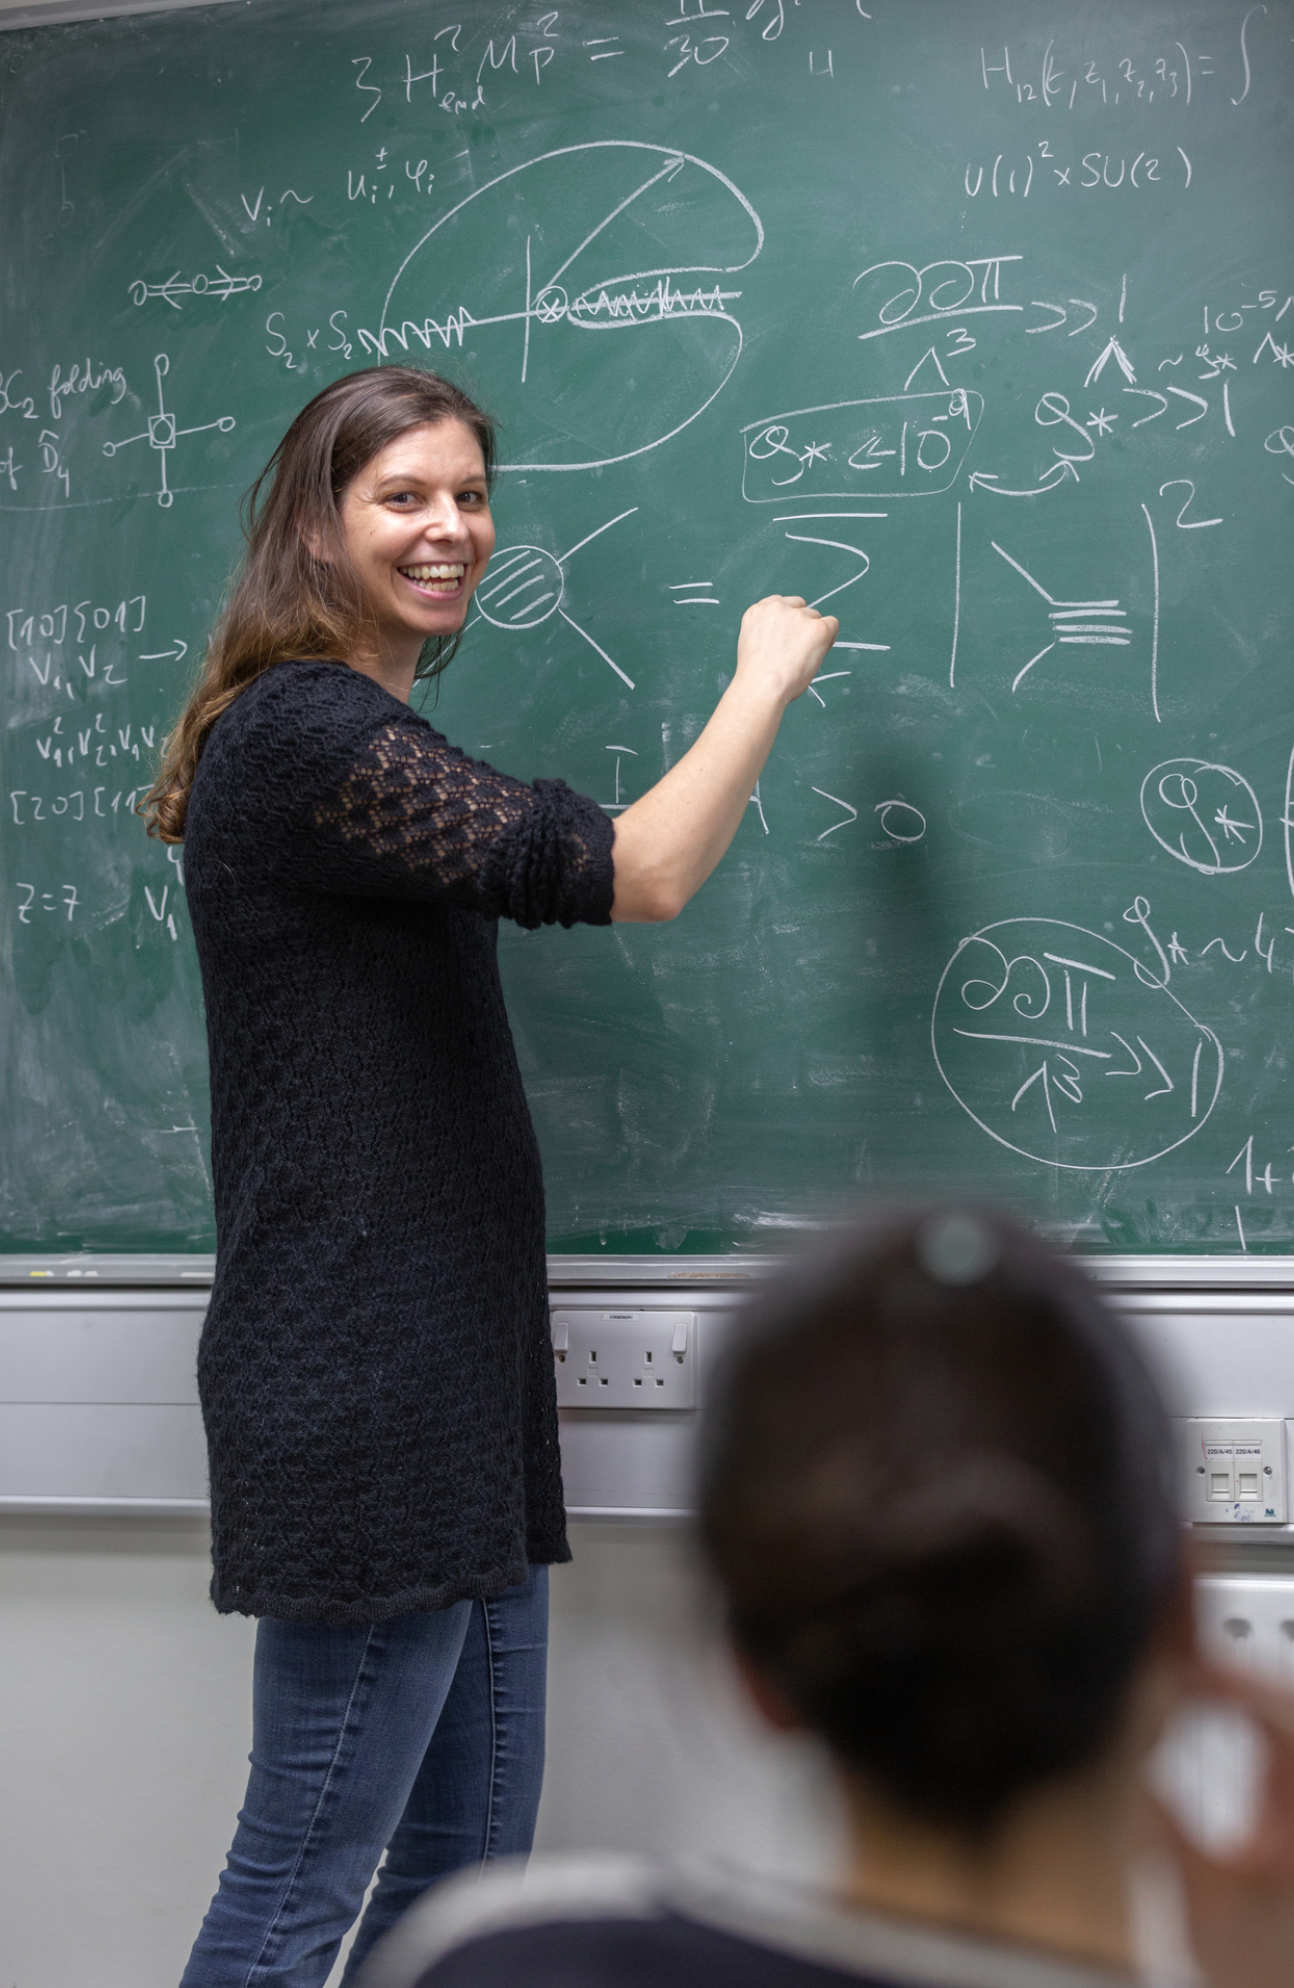 Professor Claudia de Rham teaching at a blackboard